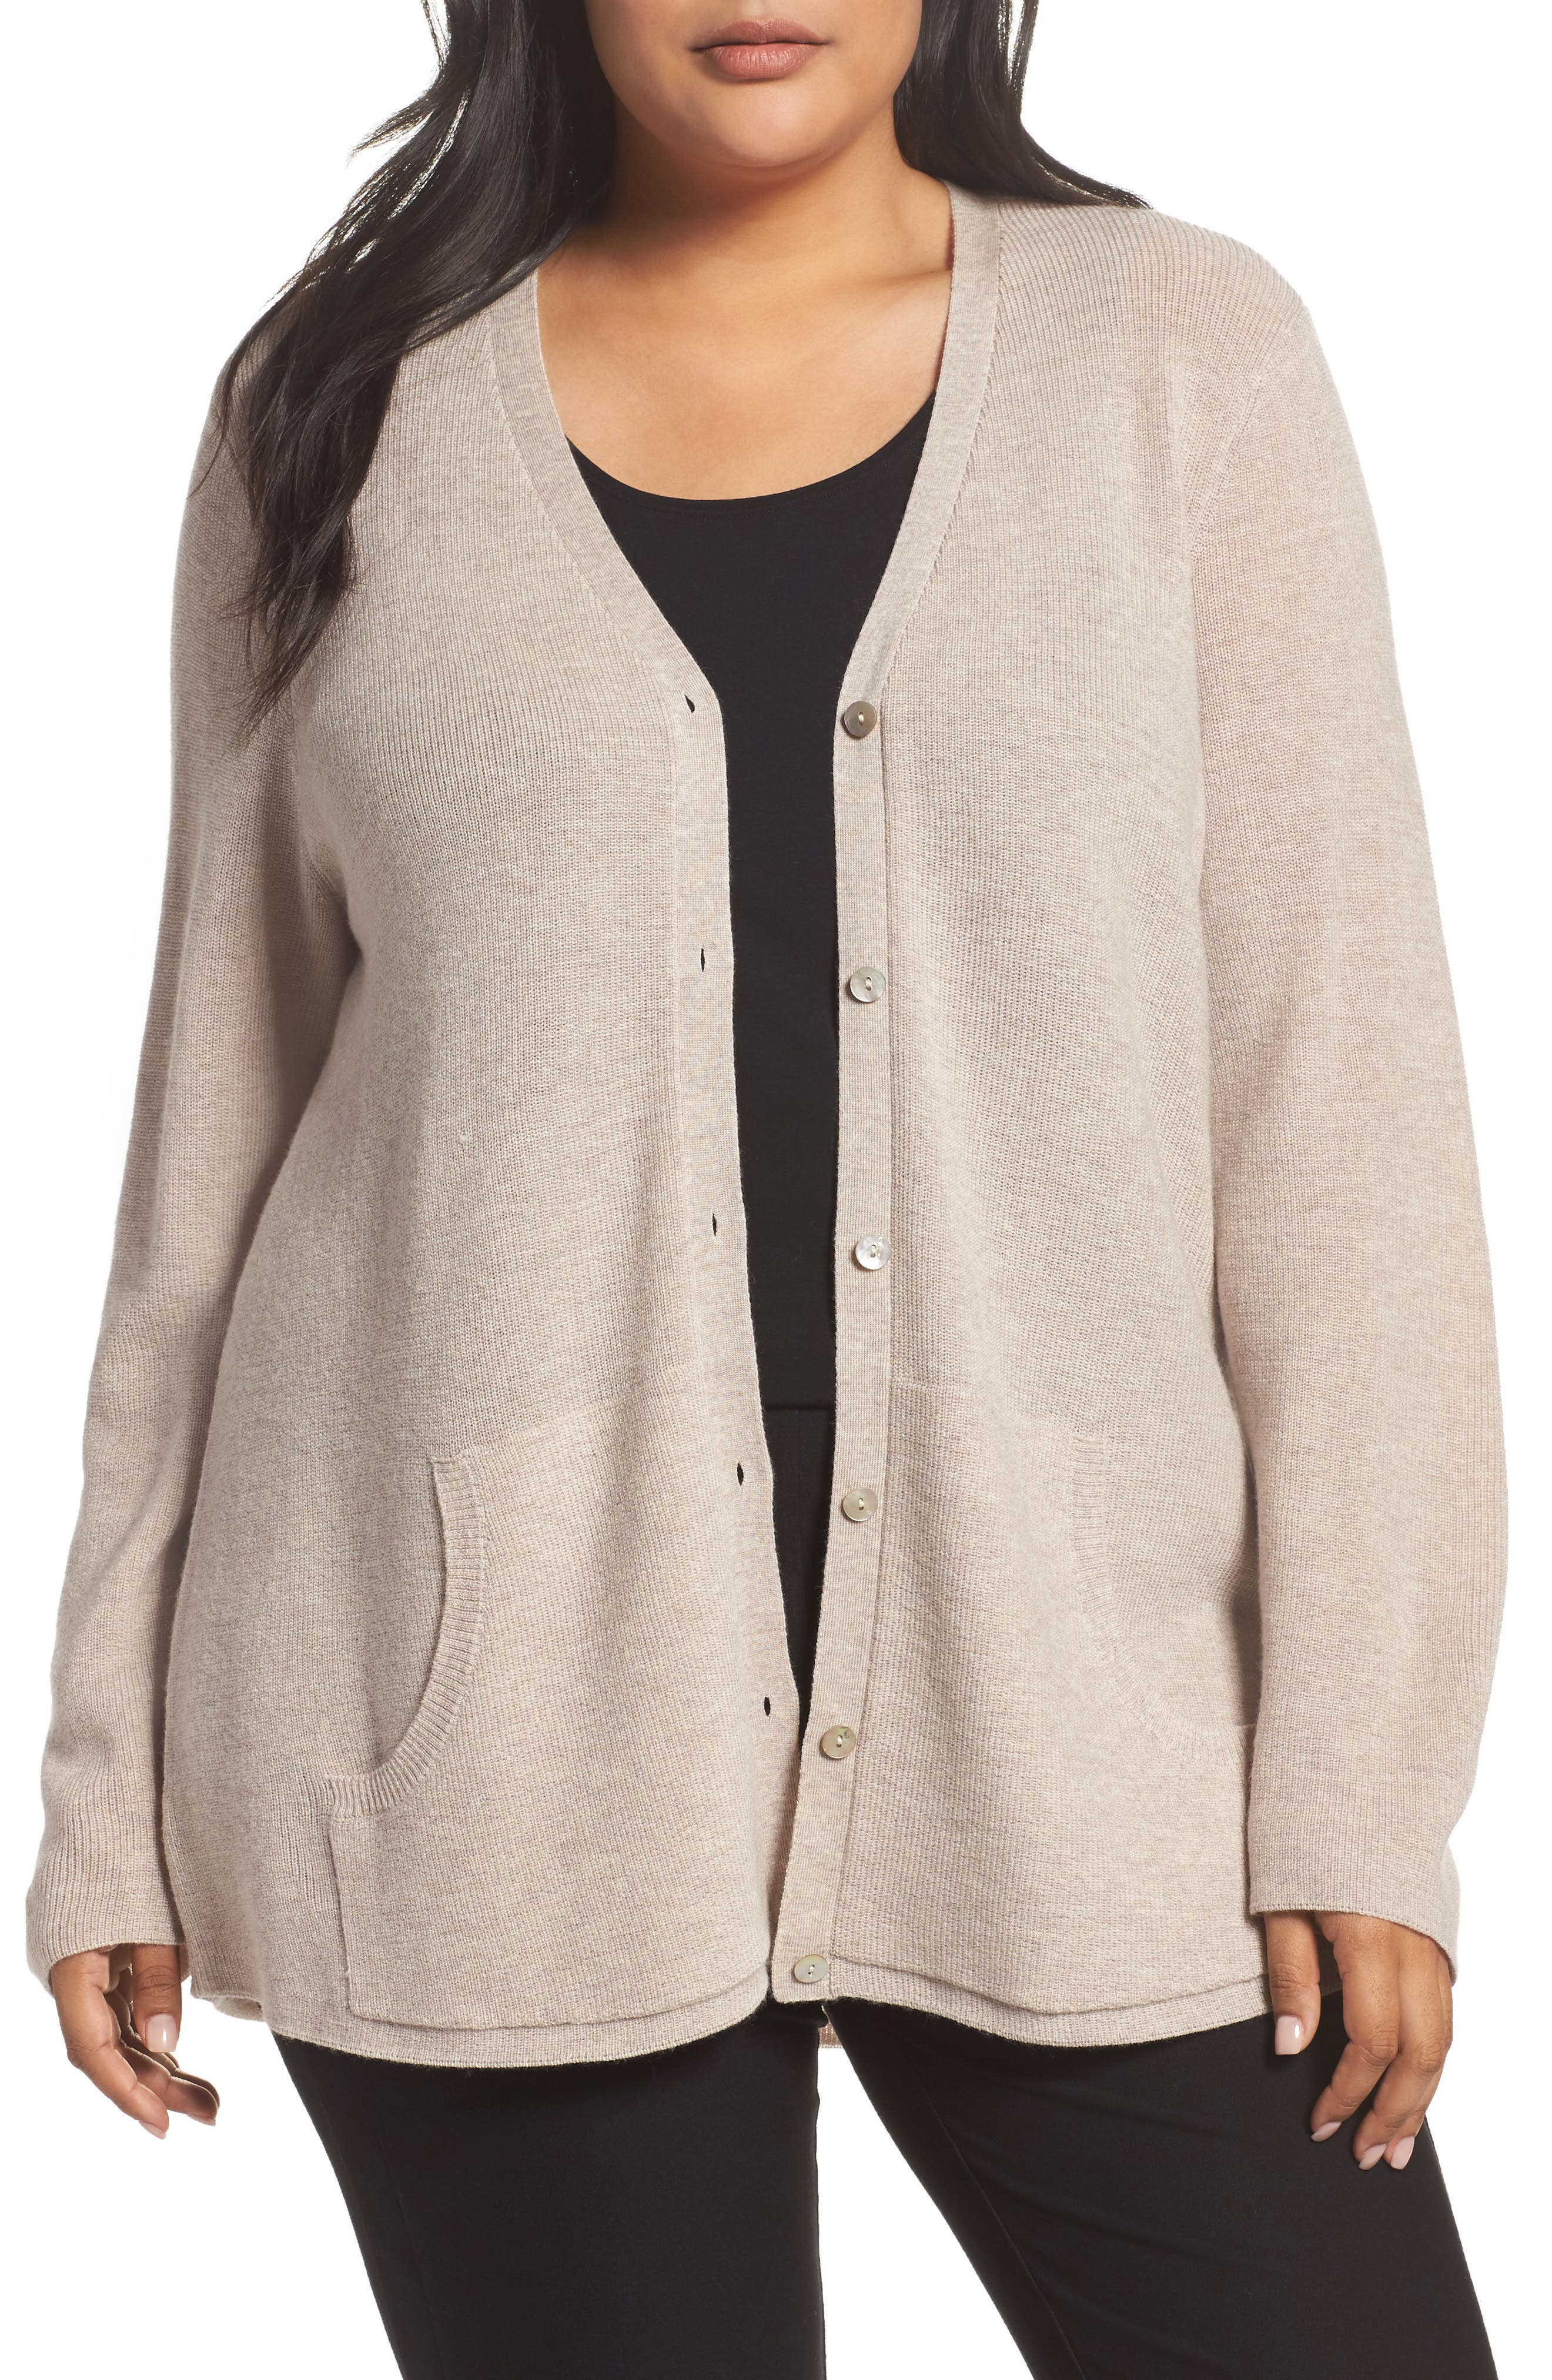 Alternate Image 1 Selected - Eileen Fisher V-Neck Merino Wool Cardigan (Plus Size)